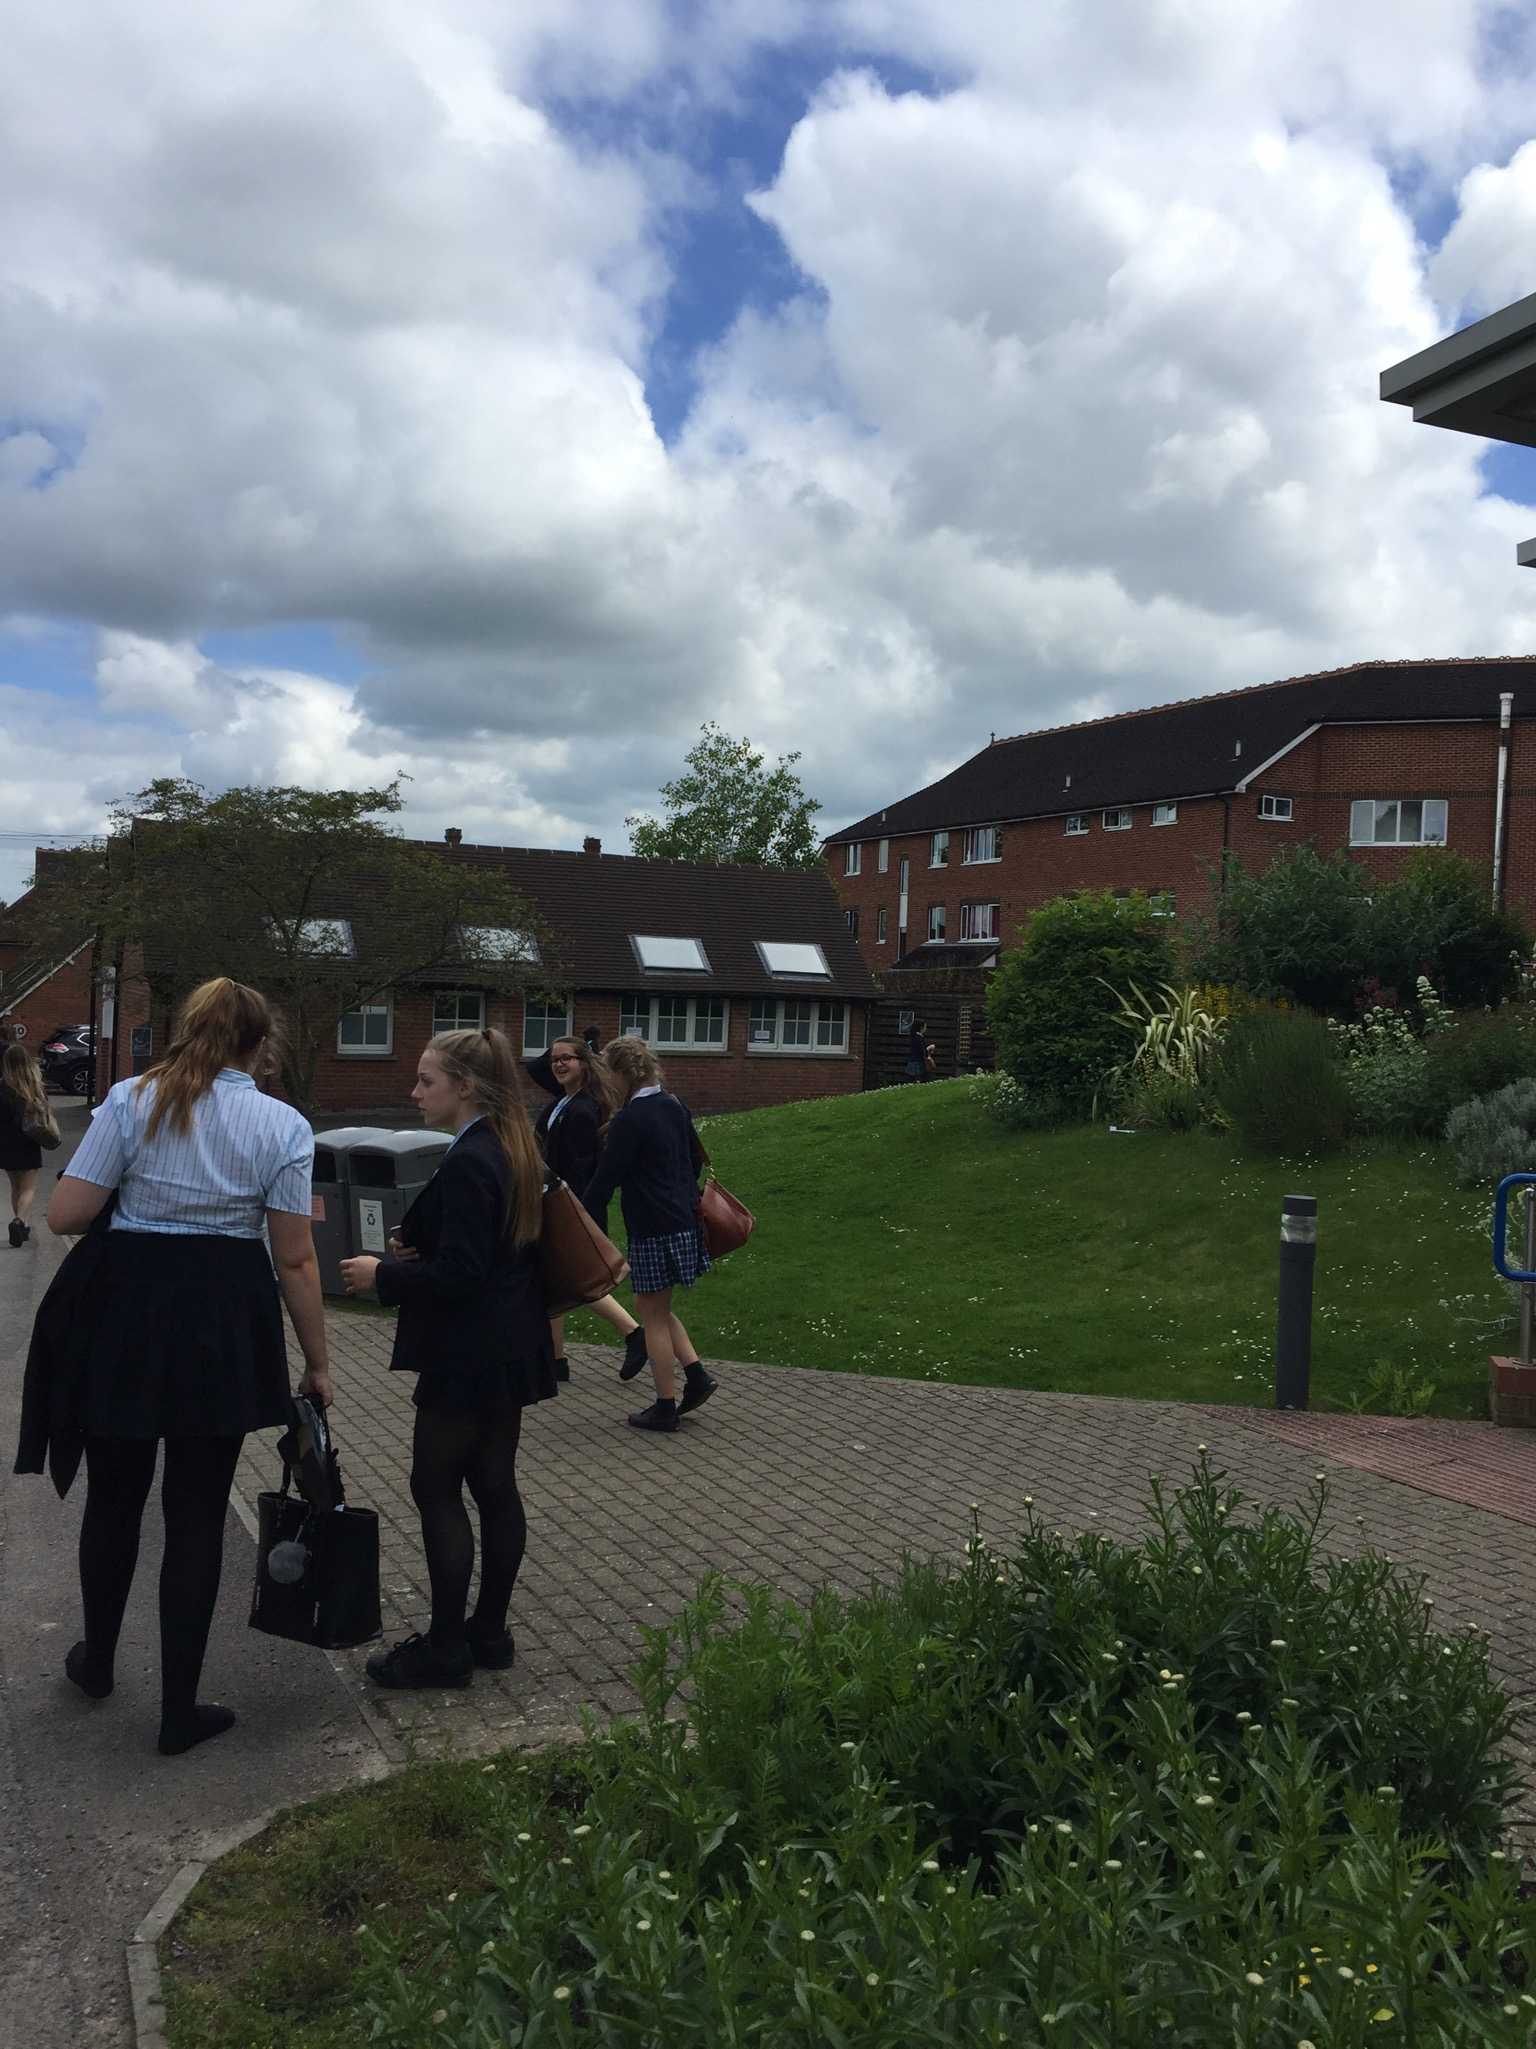 KENT COLLEGE FOR GIRLS: Pictured here is Kent College, the school that six Berkeley students had the chance to visit this past summer. The only problem? The strict uniform!